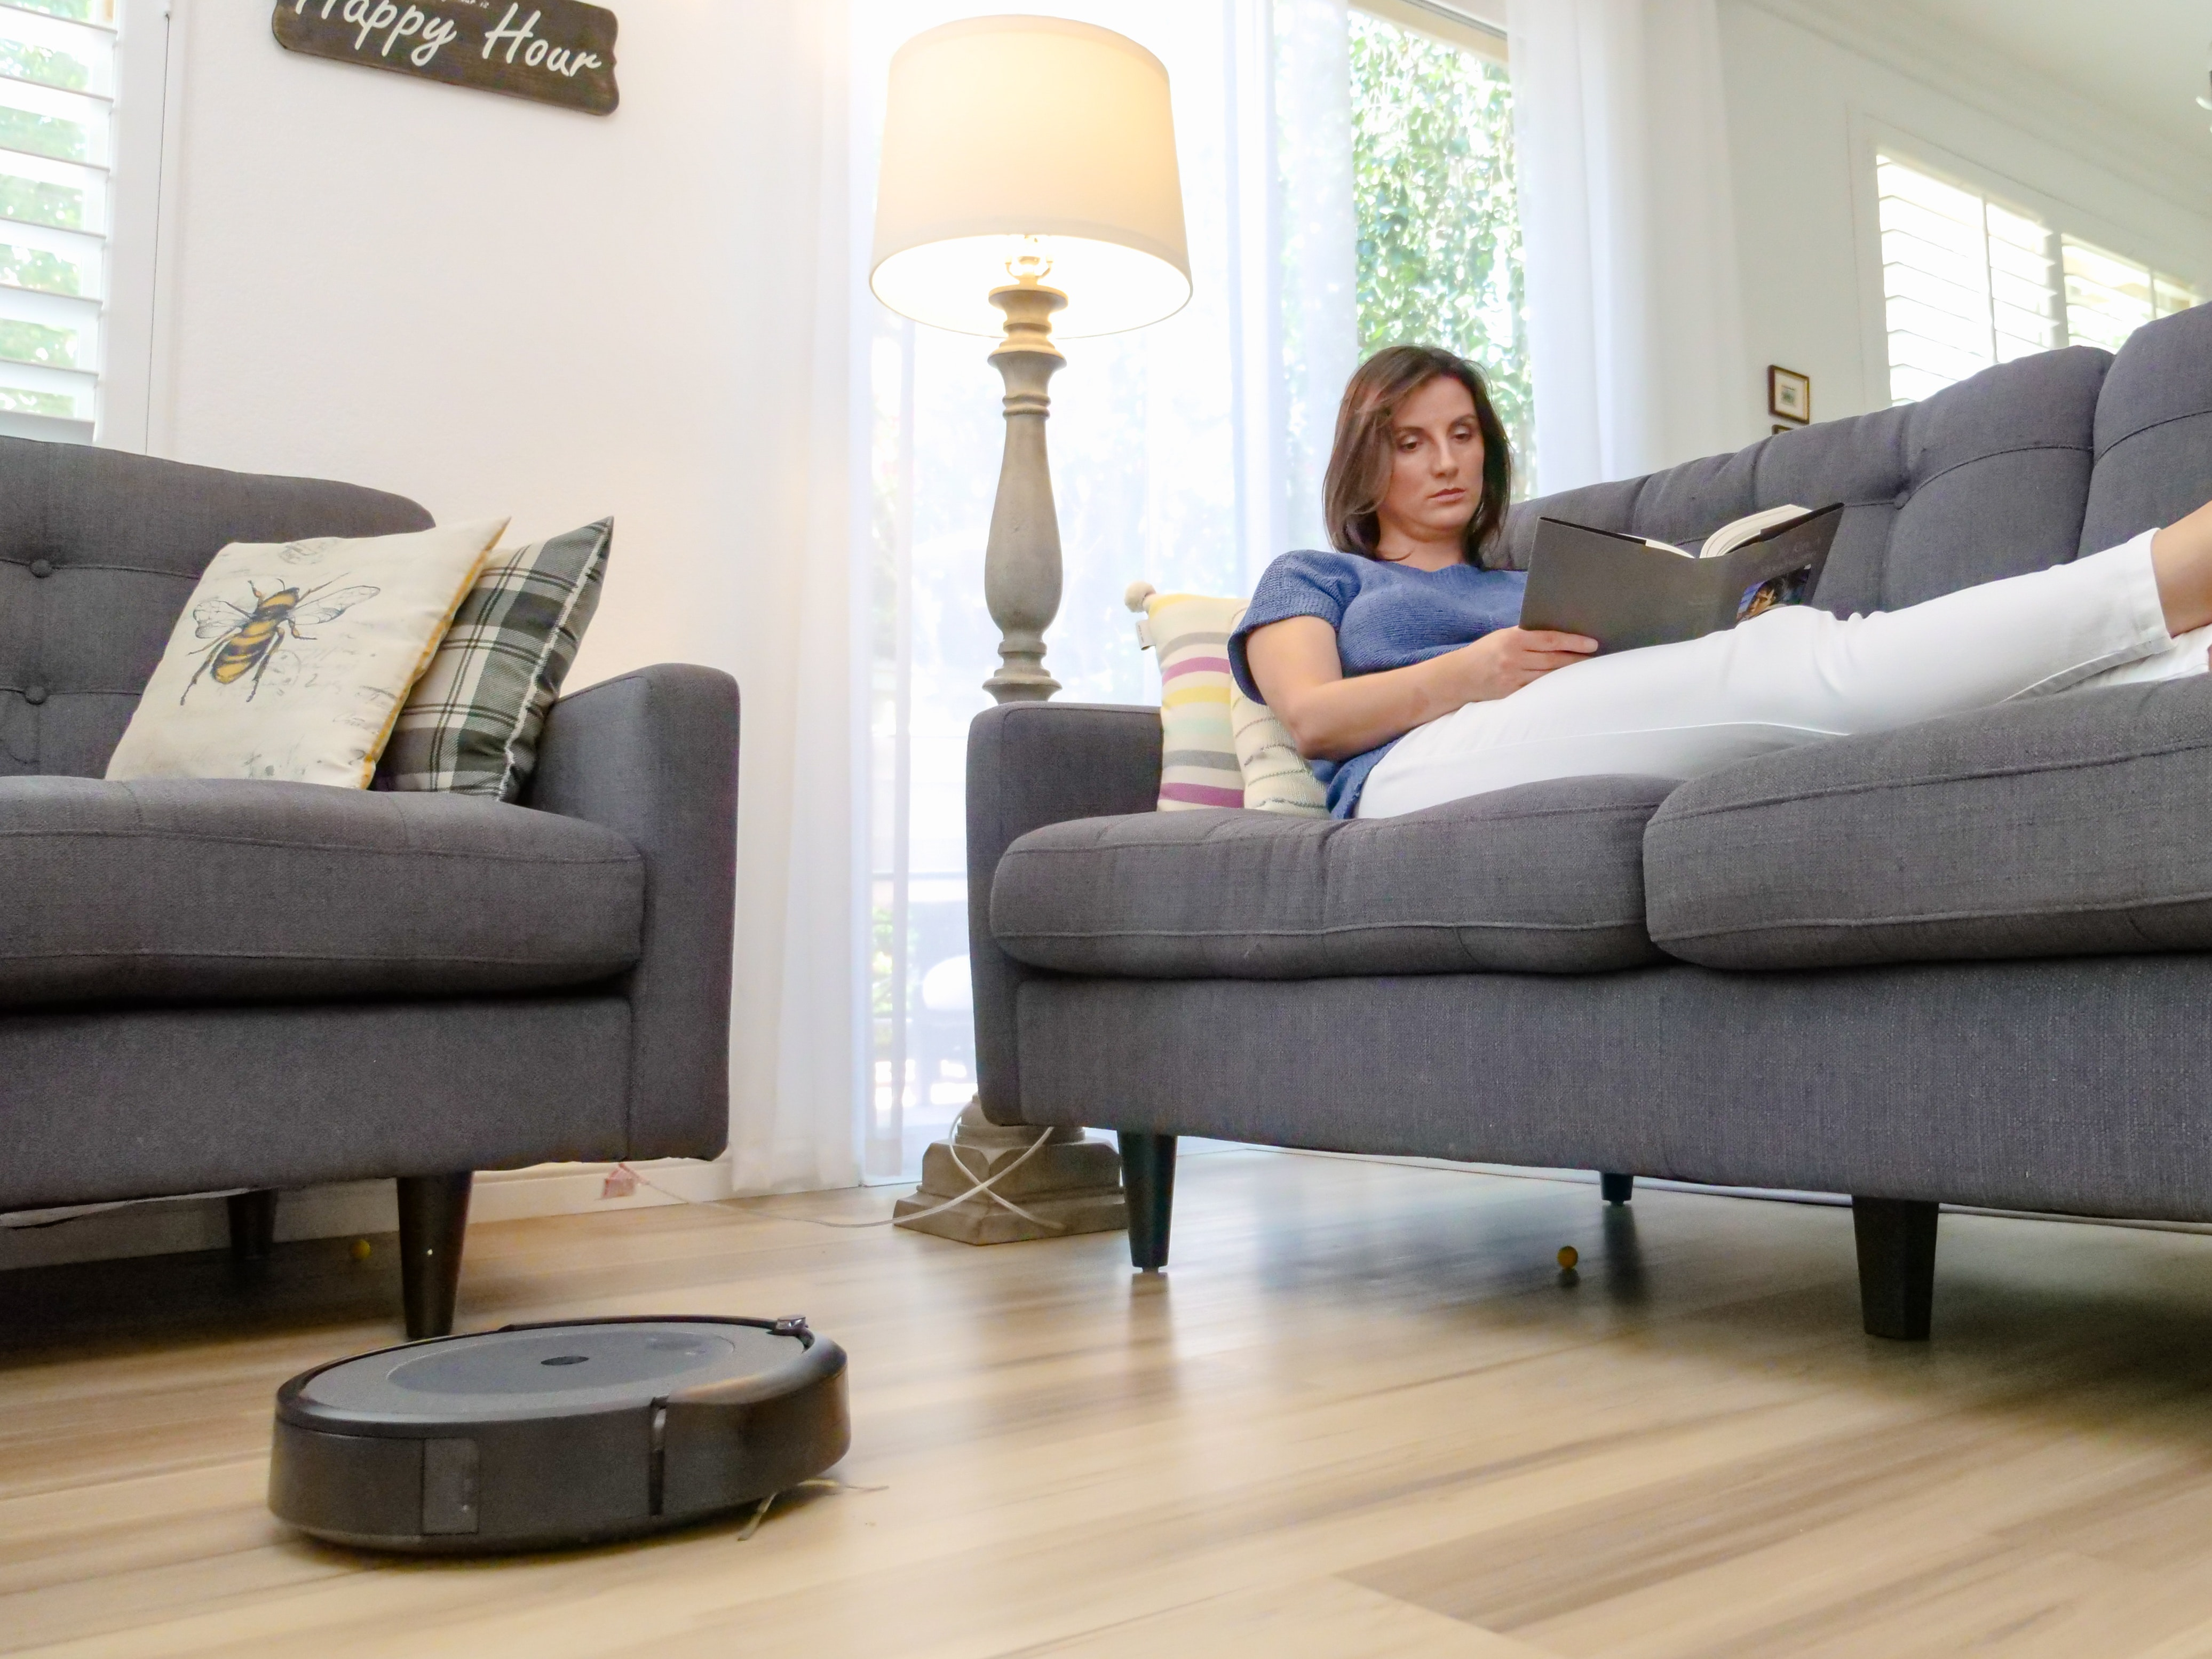 A robot vacuum cleaner cleaning the room